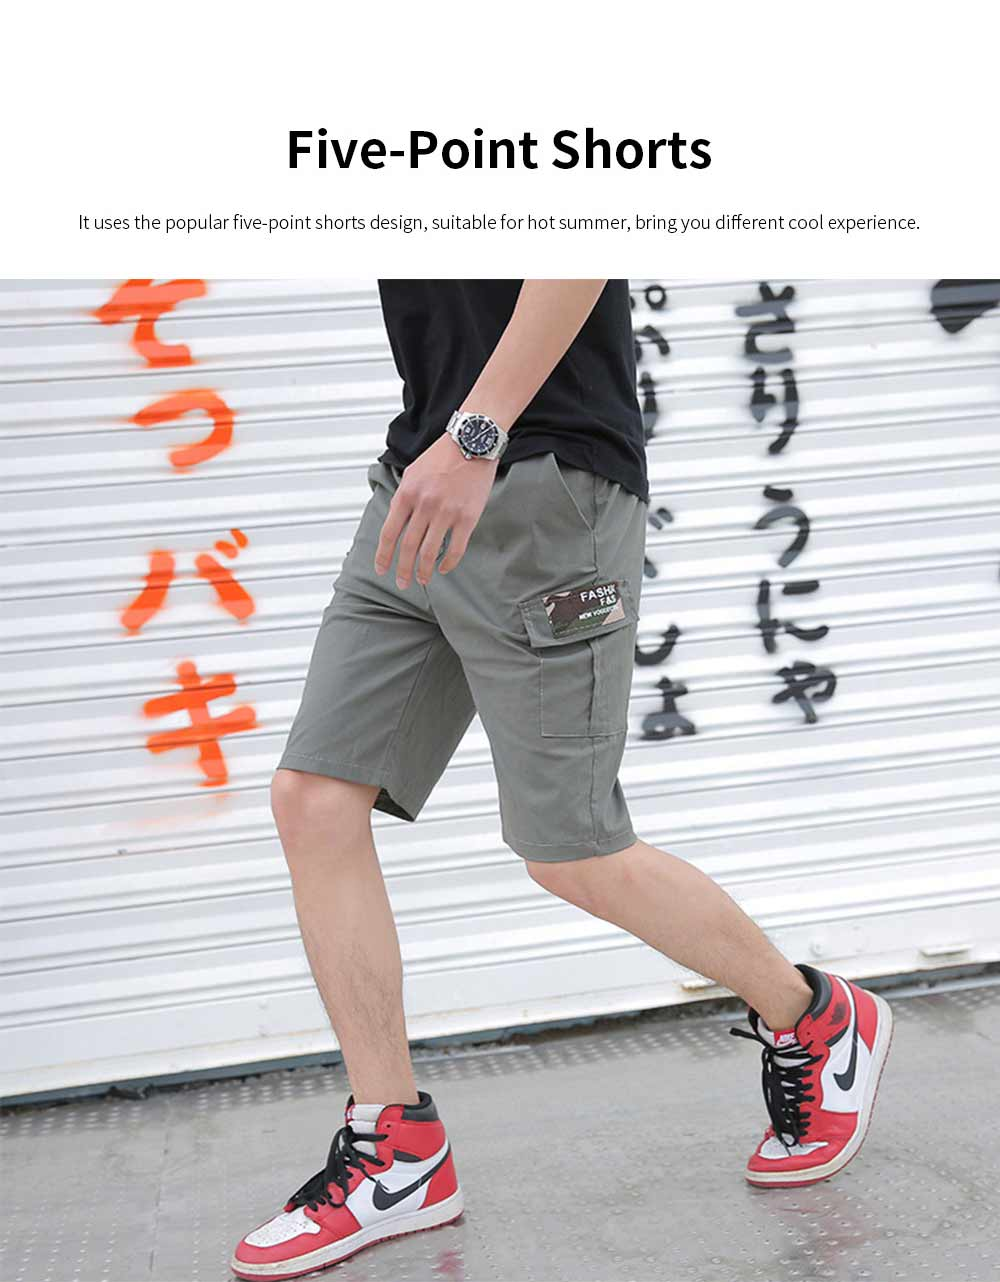 Men's Casual Overalls Shorts Students' Five-Point Shorts New Fashion Pocket Pants For Summer 2